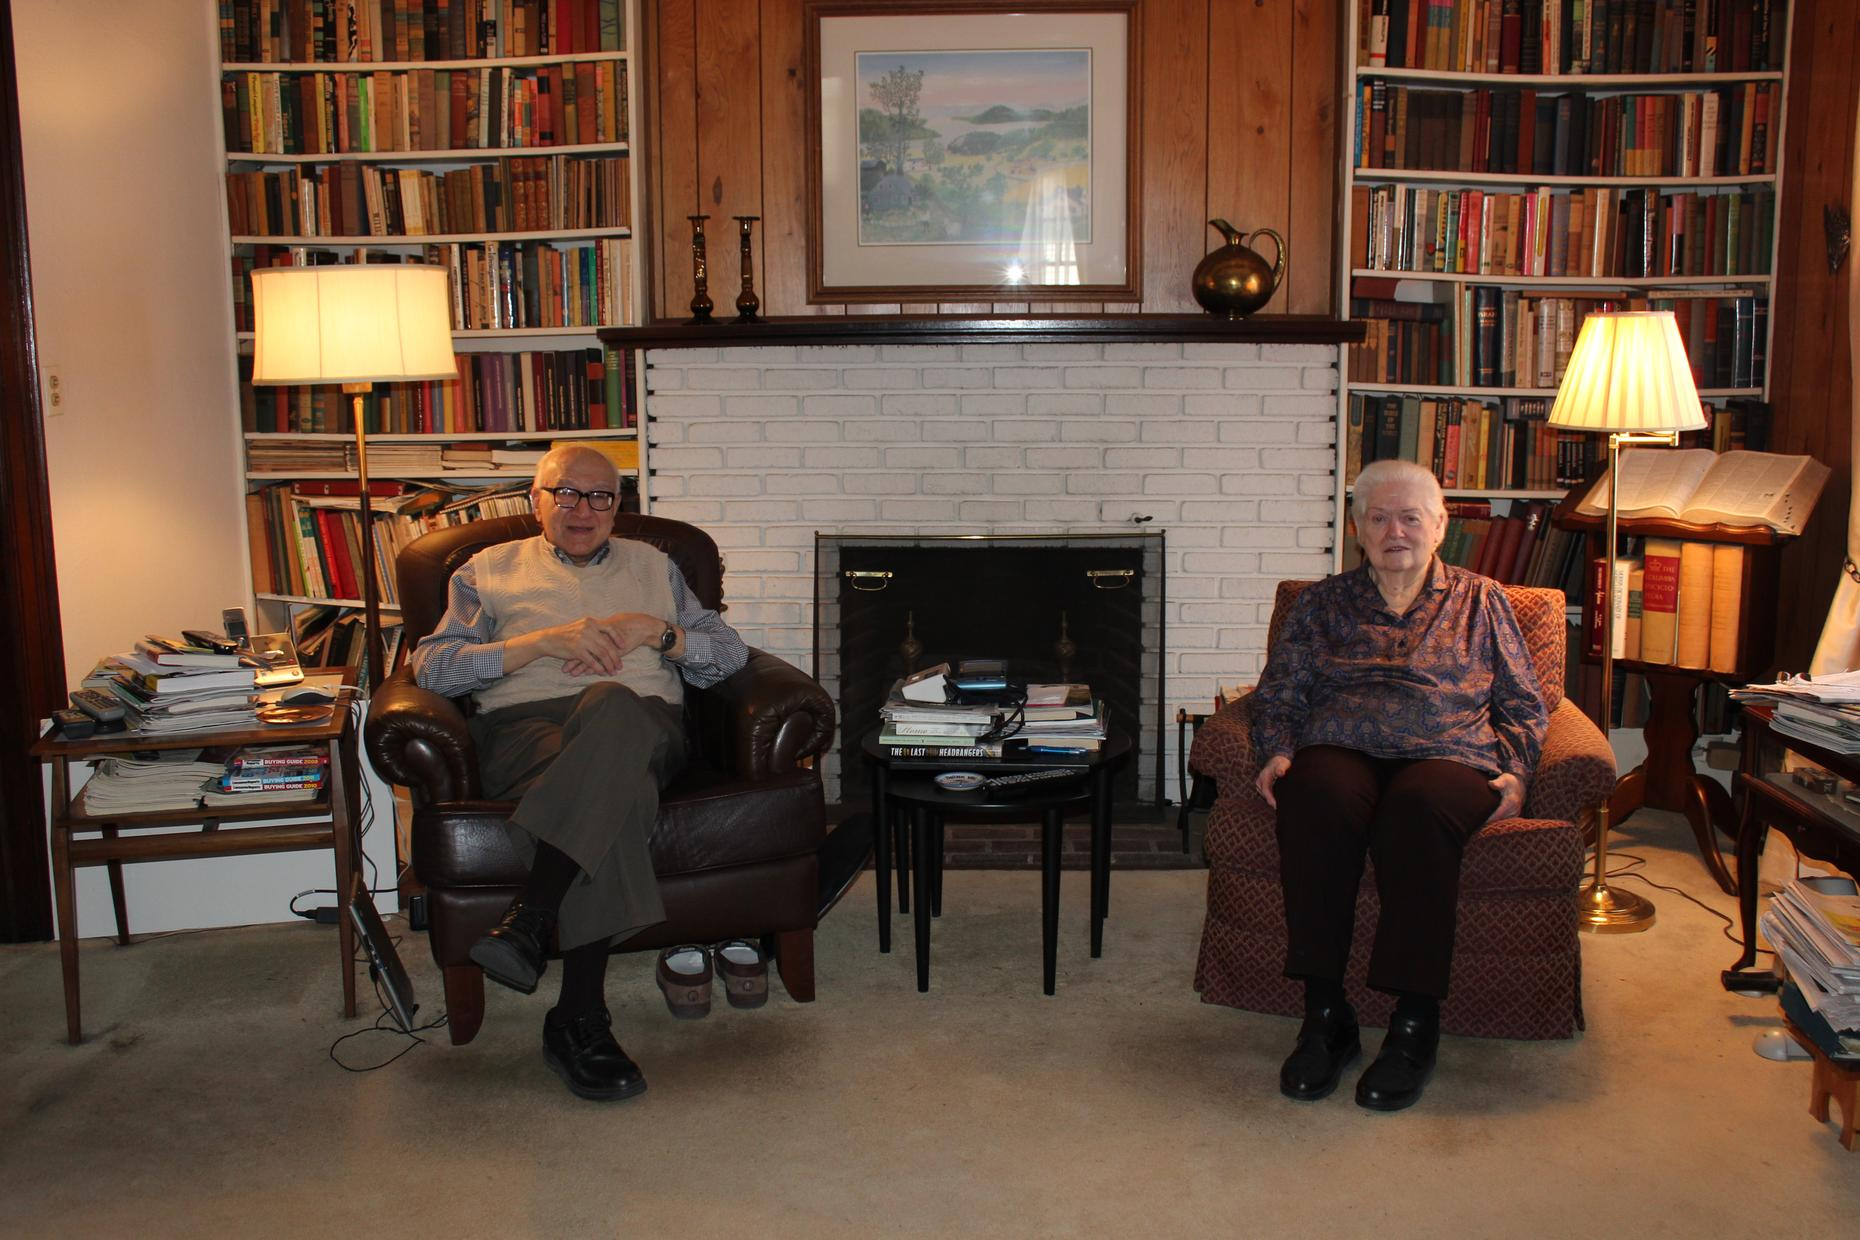 Carol and Murray Berger have lived in their home in Kew Gardens, Queens since 1957.